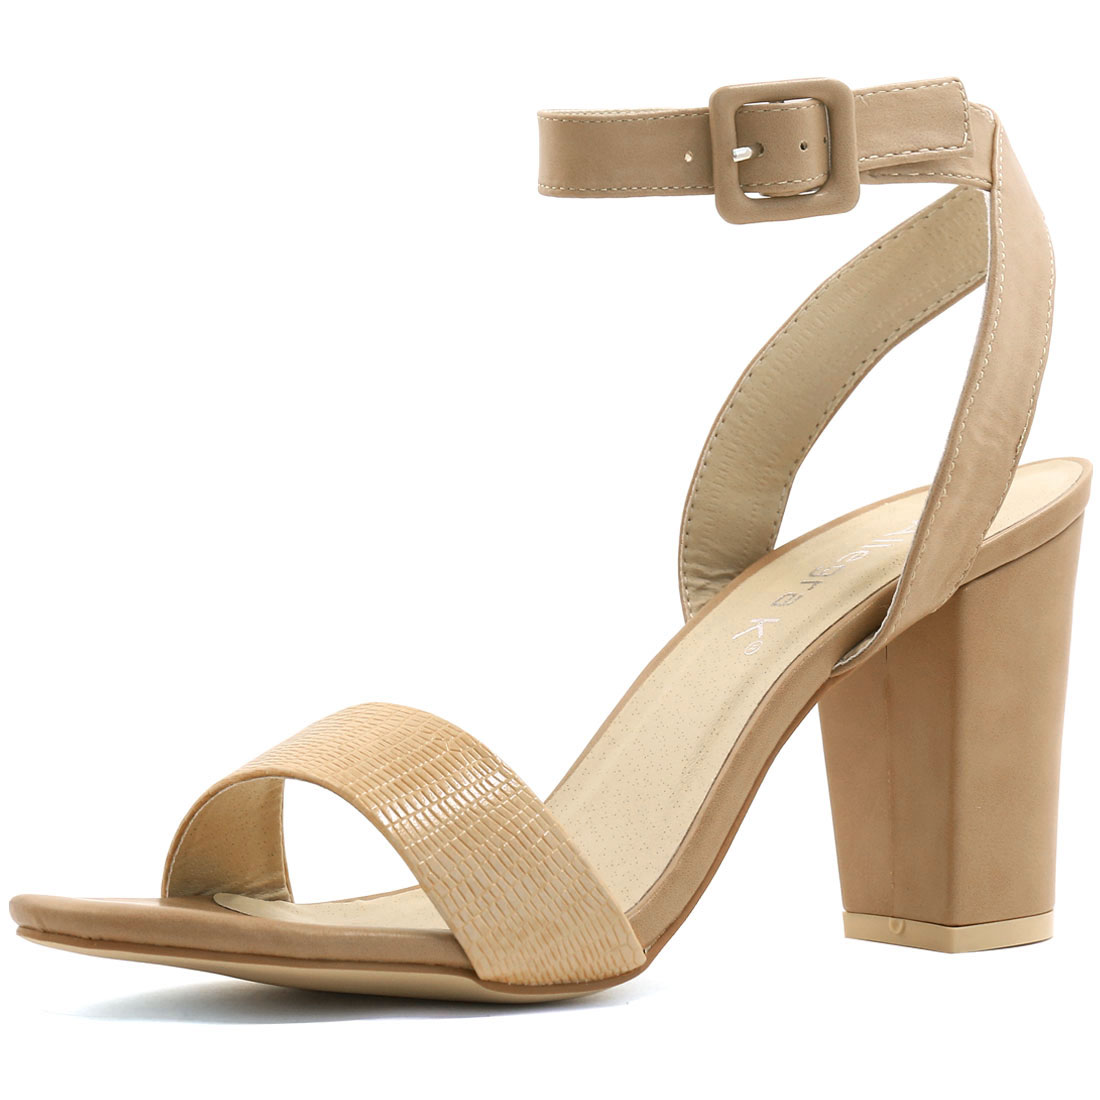 Woman Textured Vamp Chunky Heel Ankle Strap Sandals Tan US 8.5